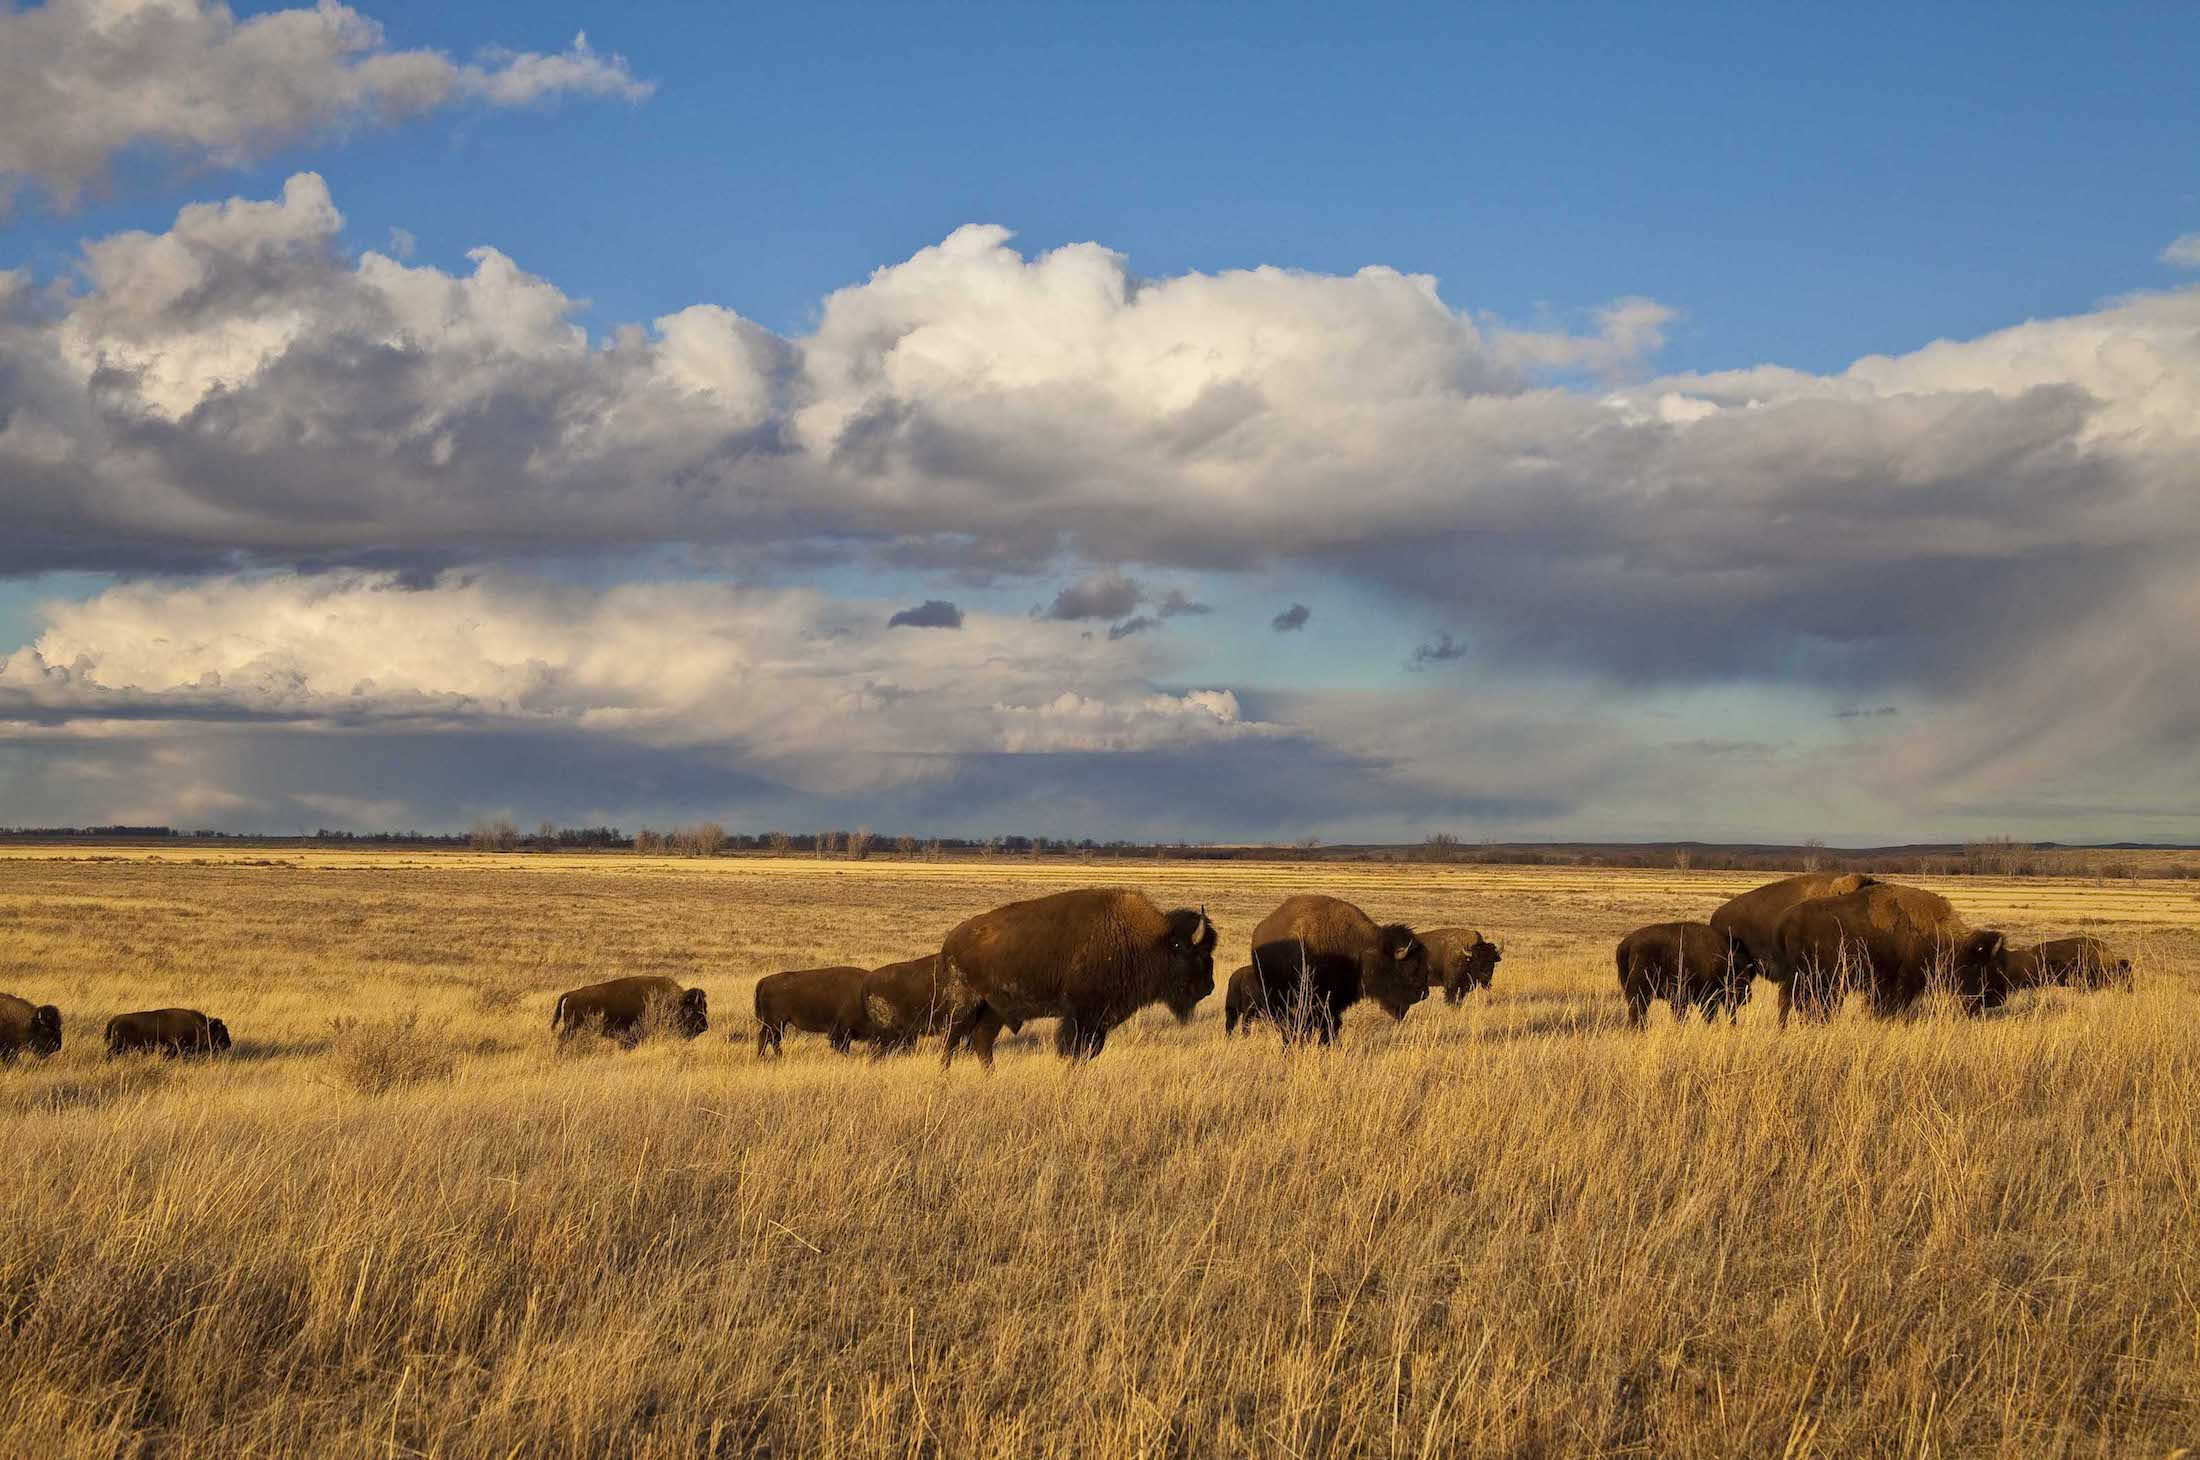 American Prairie Reserve is creating the largest nature reserve in the lower 48